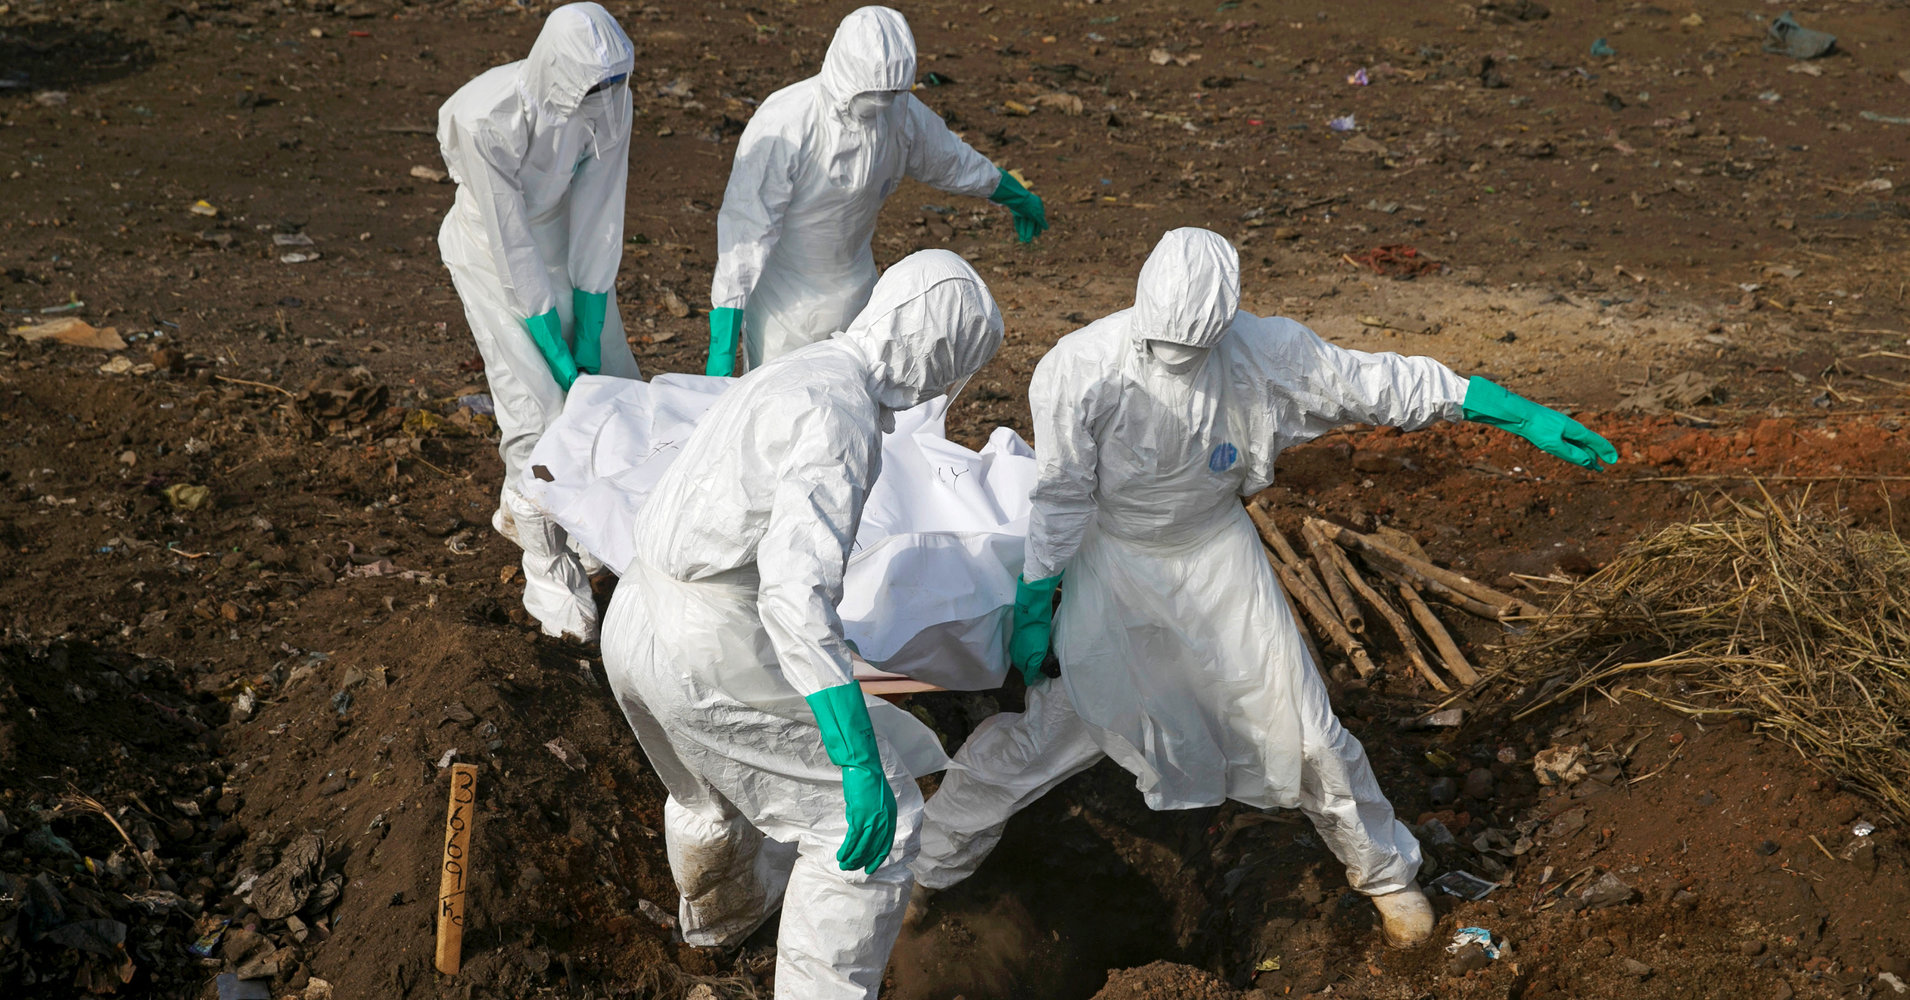 Health workers carry the body of a suspected Ebola victim for burial at a cemetery in Freetown, Sierra Leone, December 21, 2014. To match Special Report HEALTH-WHO/LEADER REUTERS/Baz Ratner/File Photo